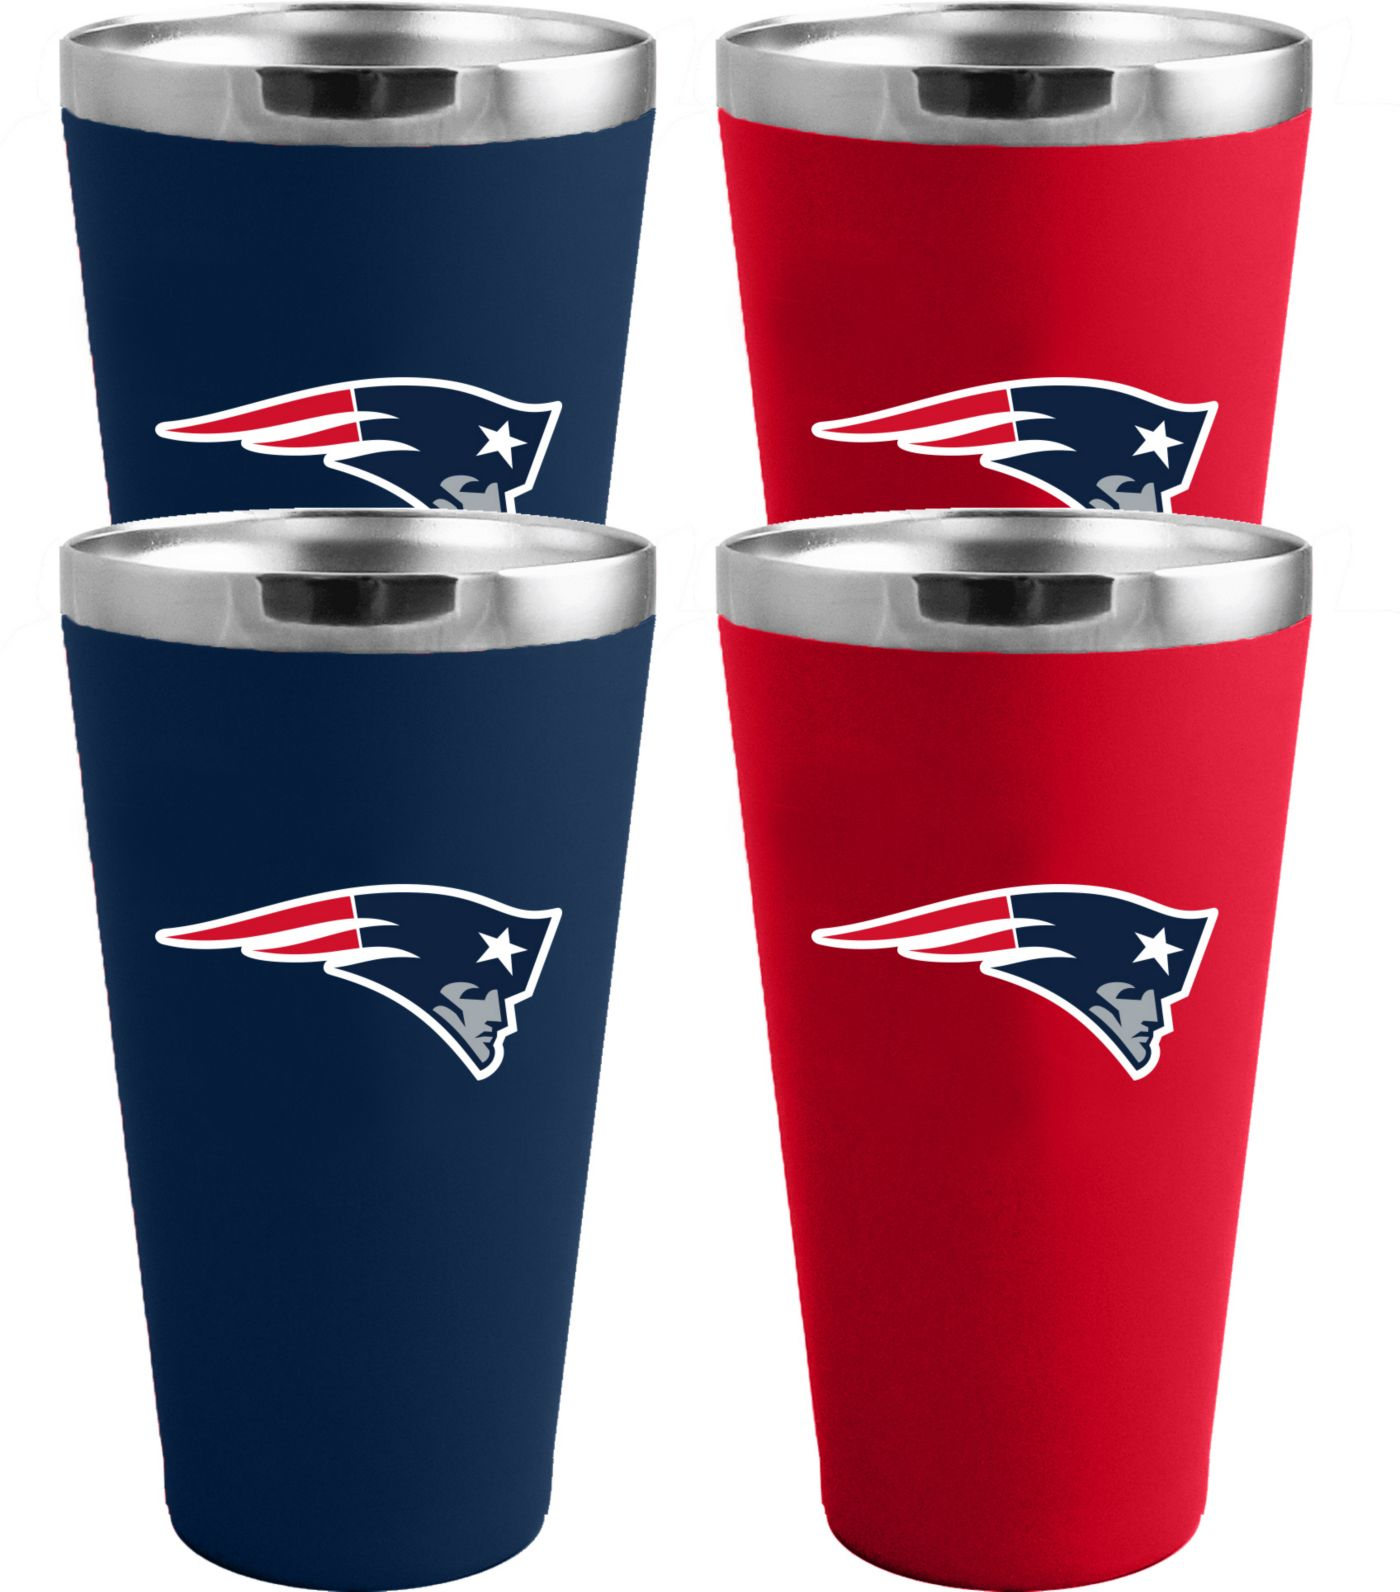 Memory Company New England Patriots 4 Pack Drinkware Set